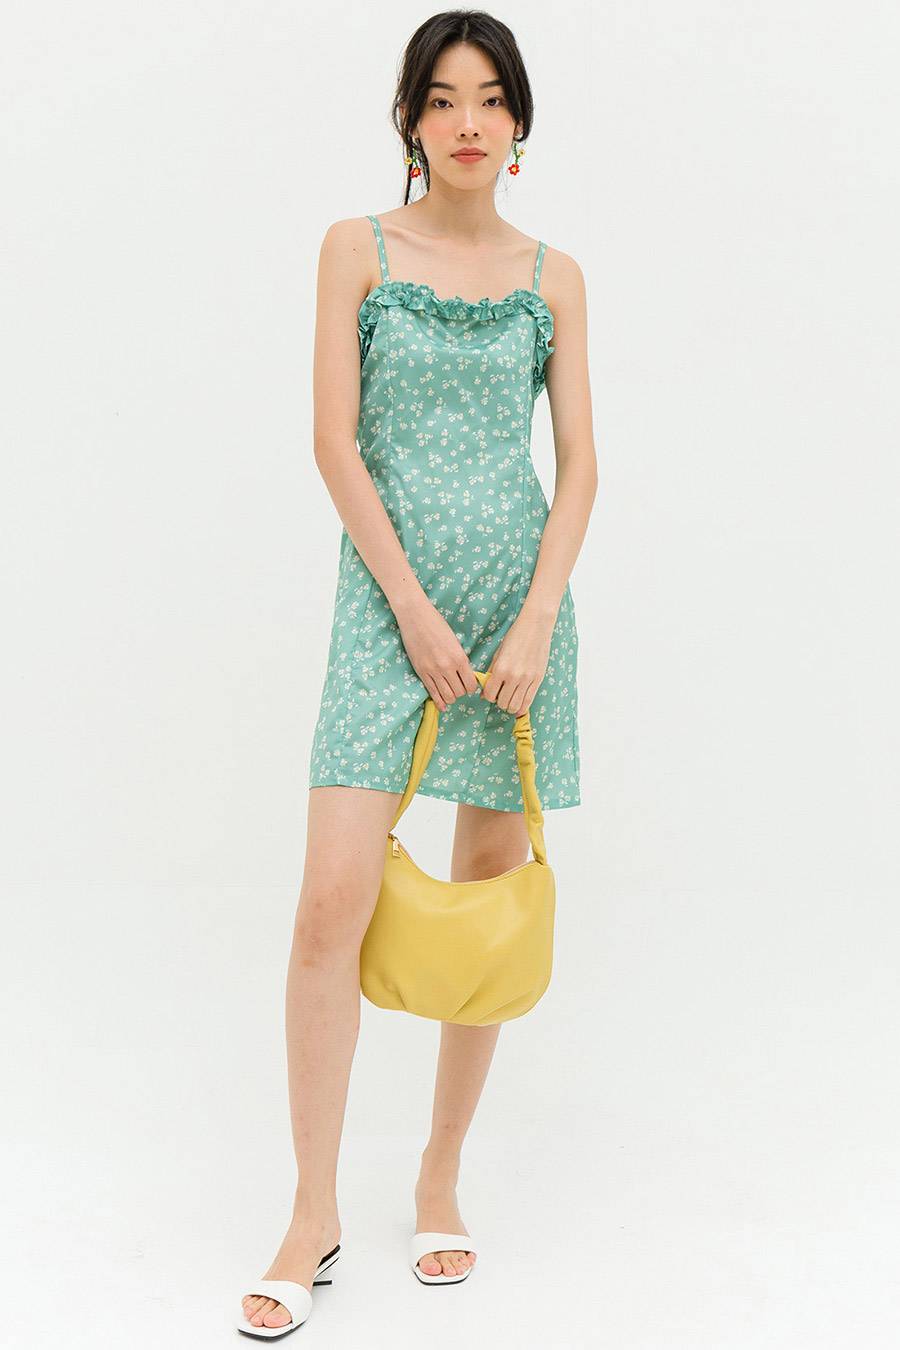 MELROSE DRESS - MINT TULIP